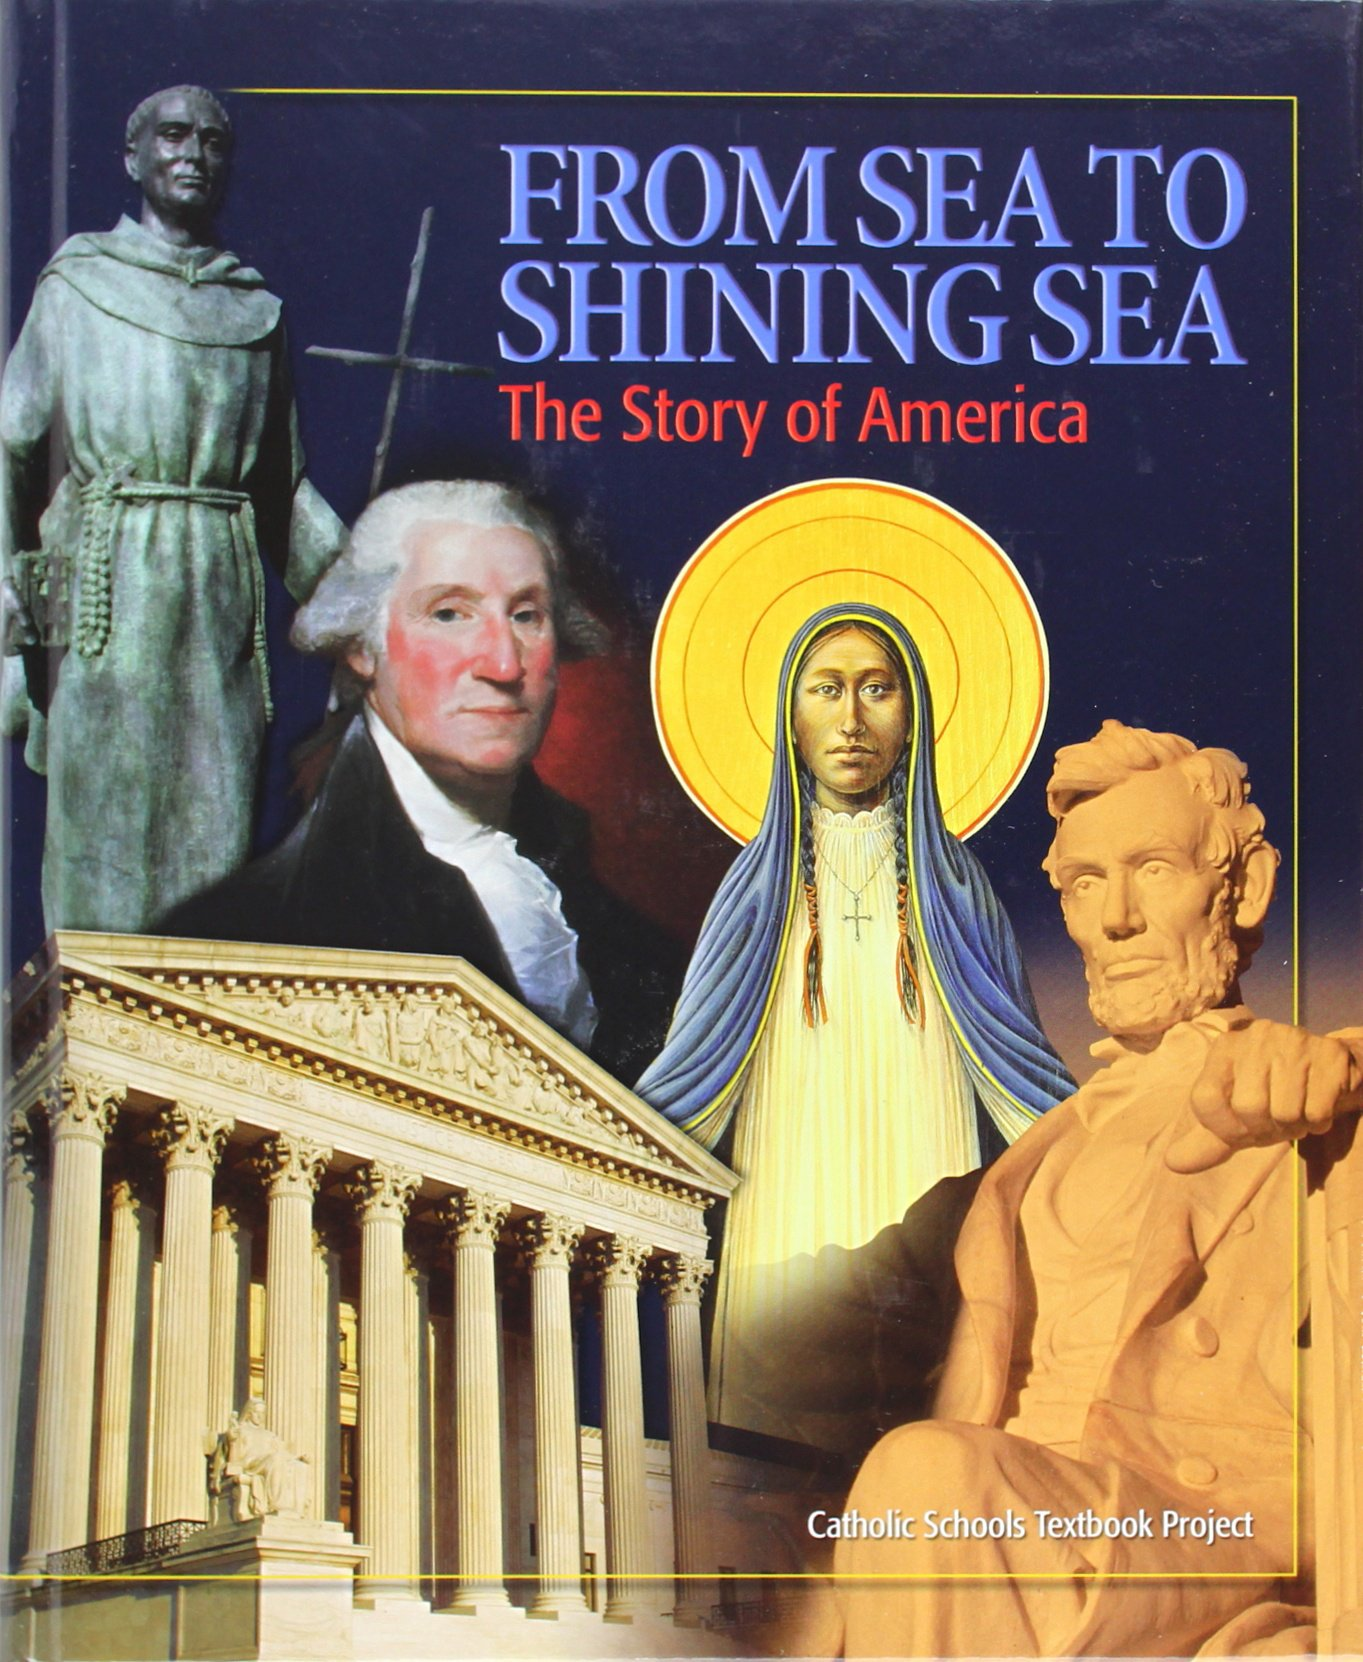 From Sea to Shining Sea: The Story of America by Ignatius Press